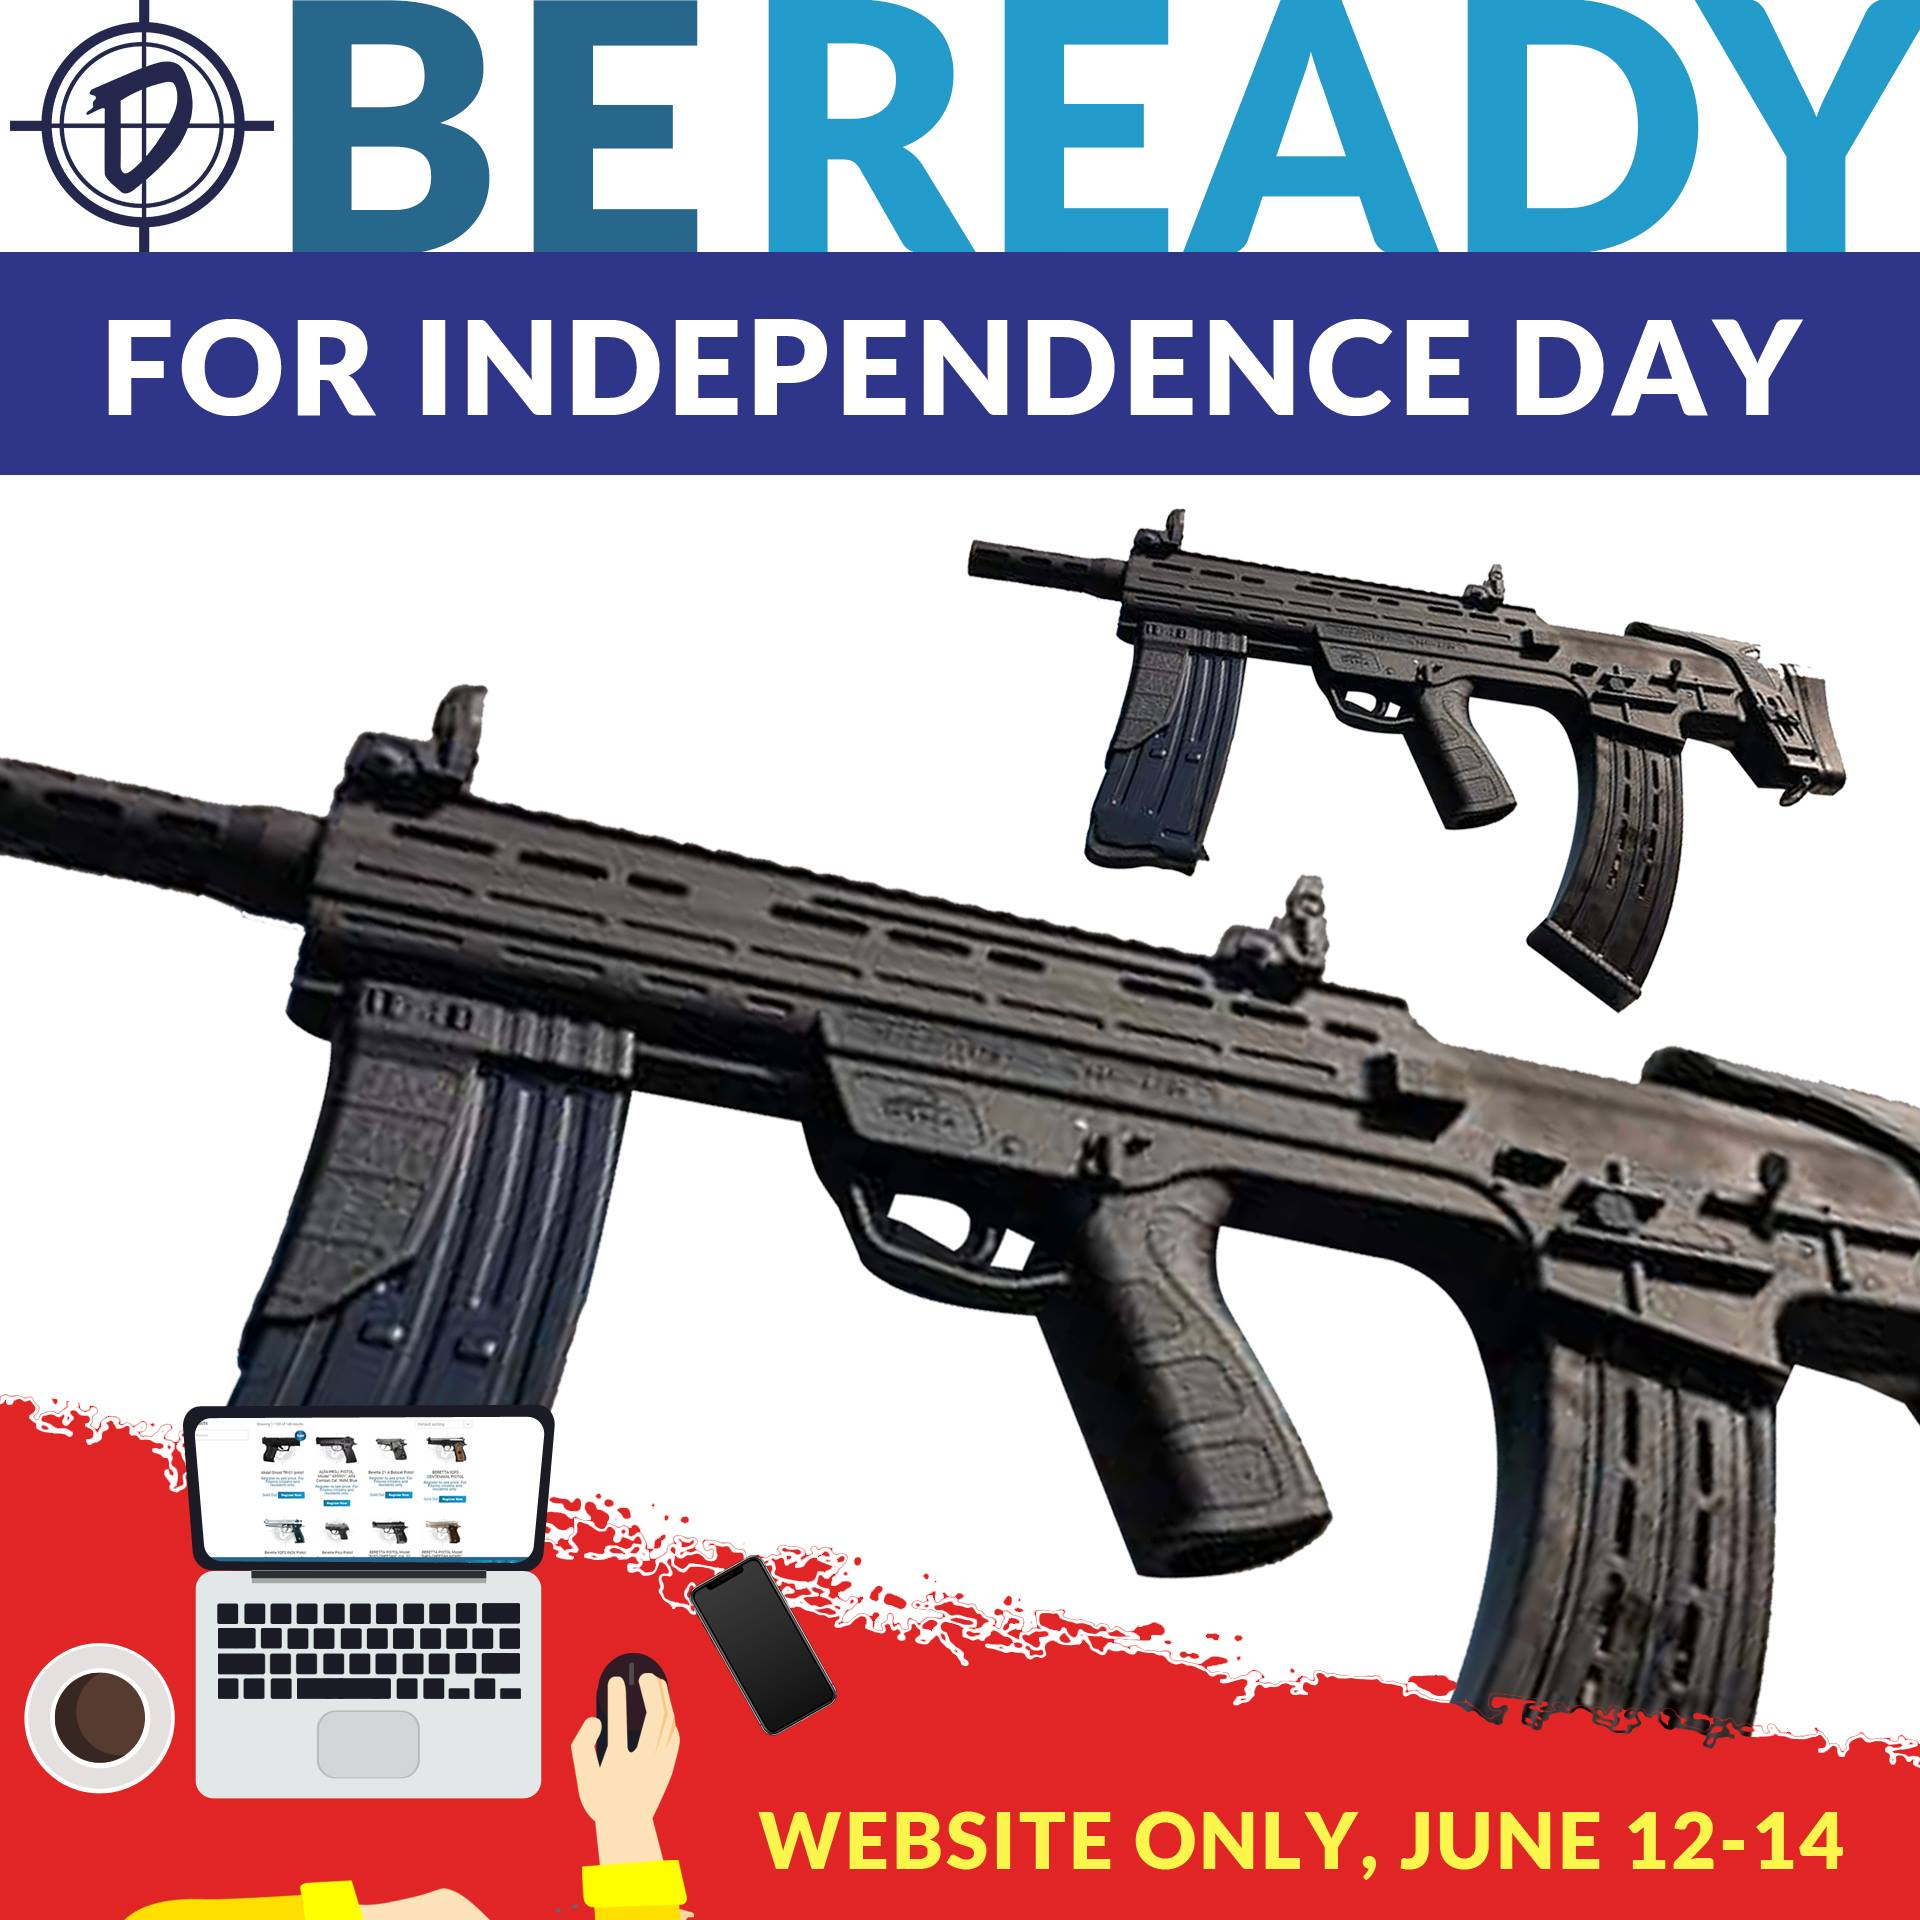 Be ready for the P.B.Dionisio & Co.'s Independence Day Sale.